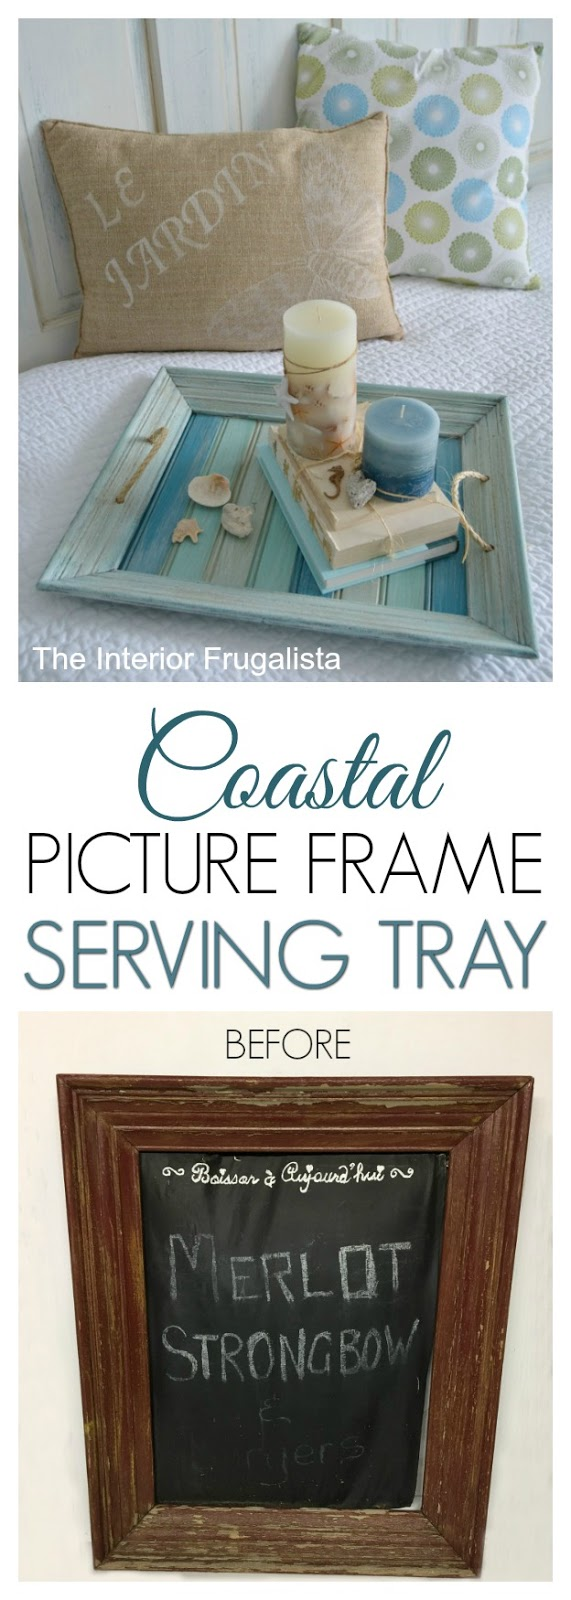 Coastal Picture Frame Serving Tray Before and After